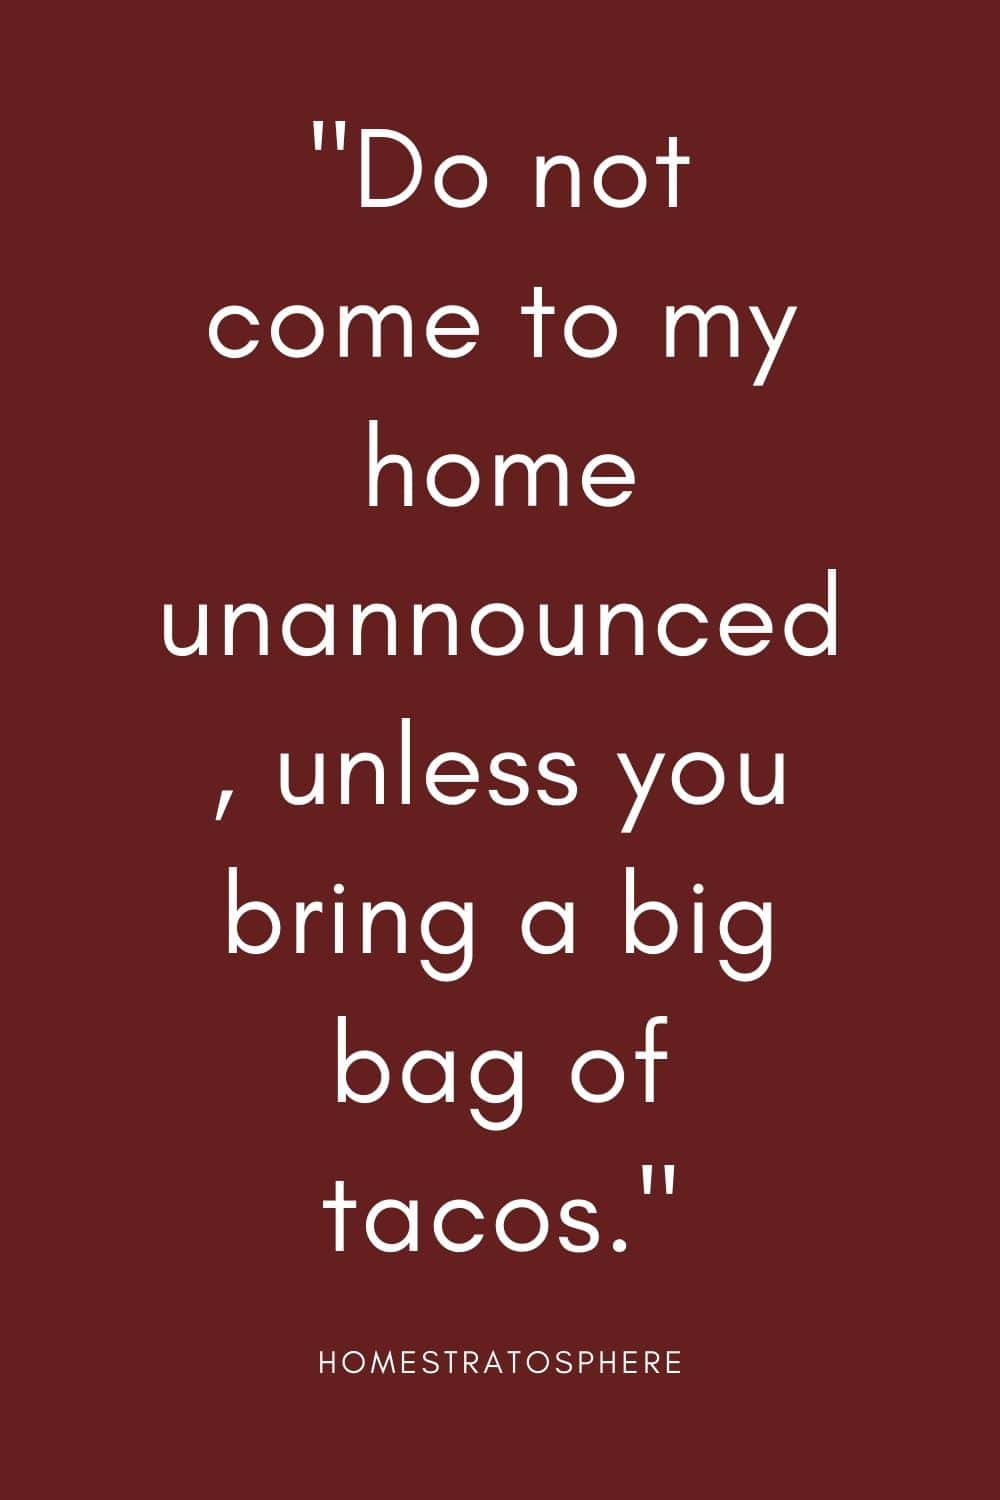 """Do not come to my home unannounced, unless you bring a big bag of tacos."""